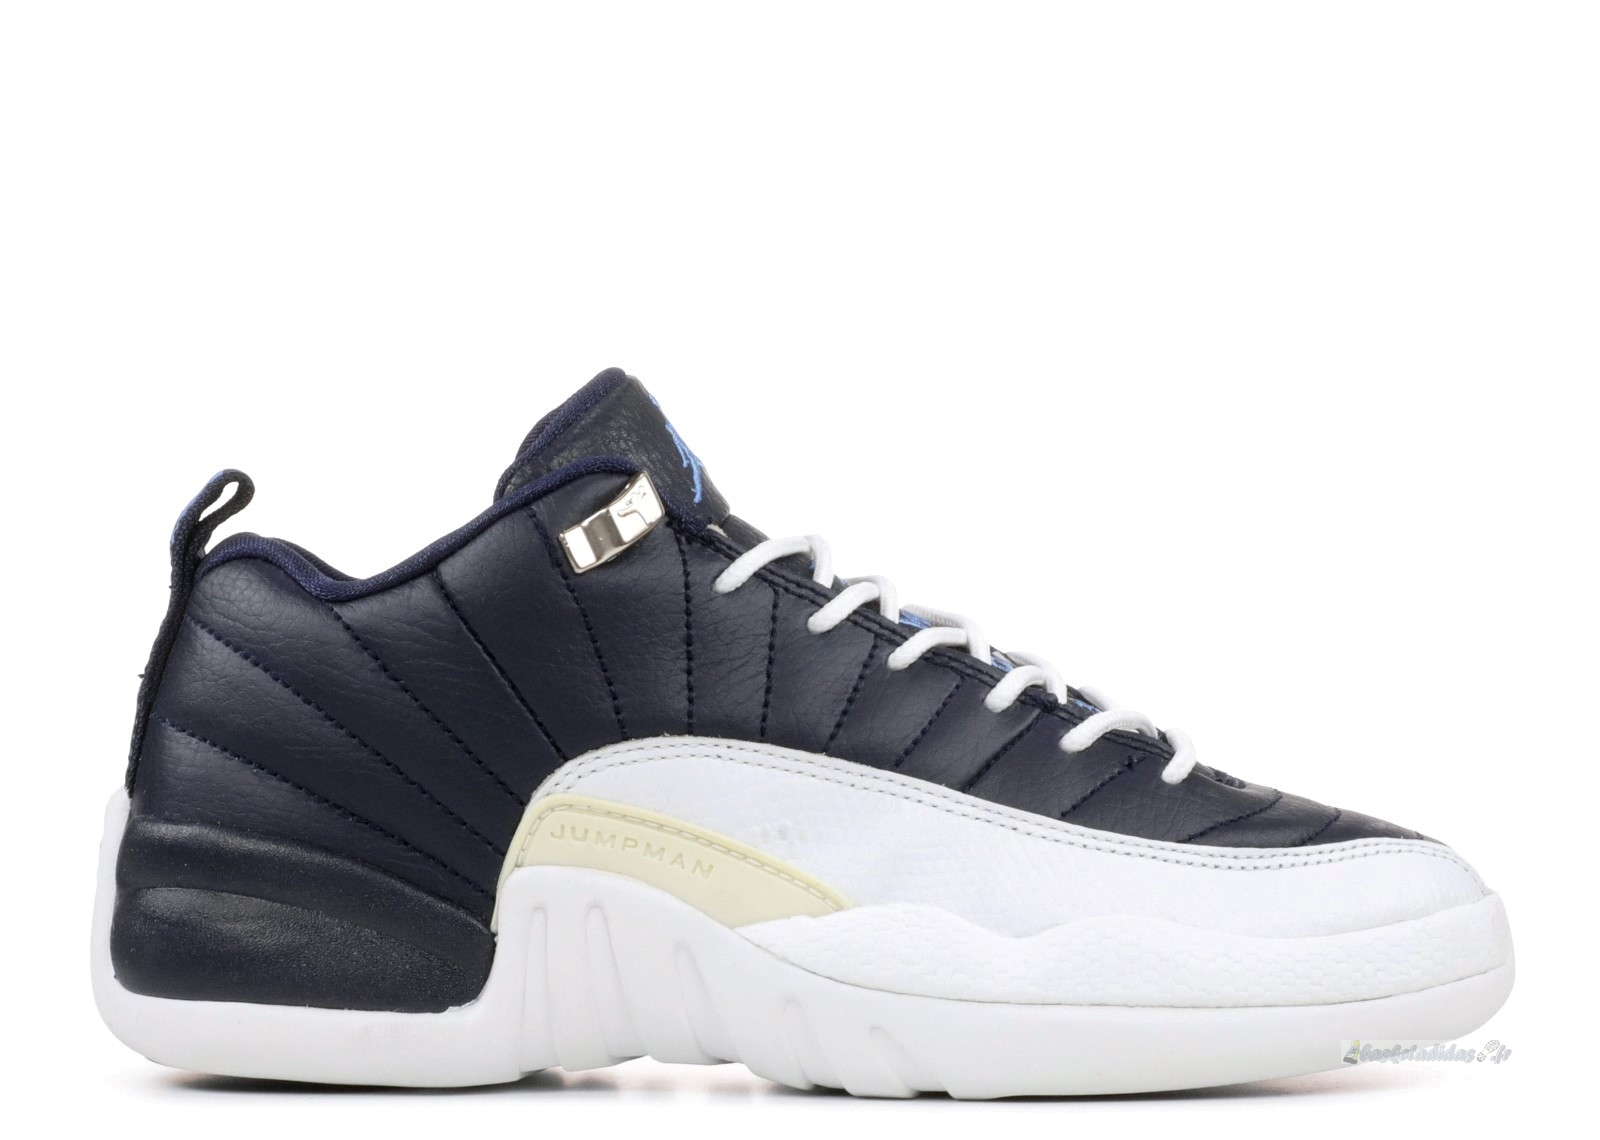 Chaussure de Basket Air Jordan 12 Retro Low (Gs) Noir Blanc (308305-441)